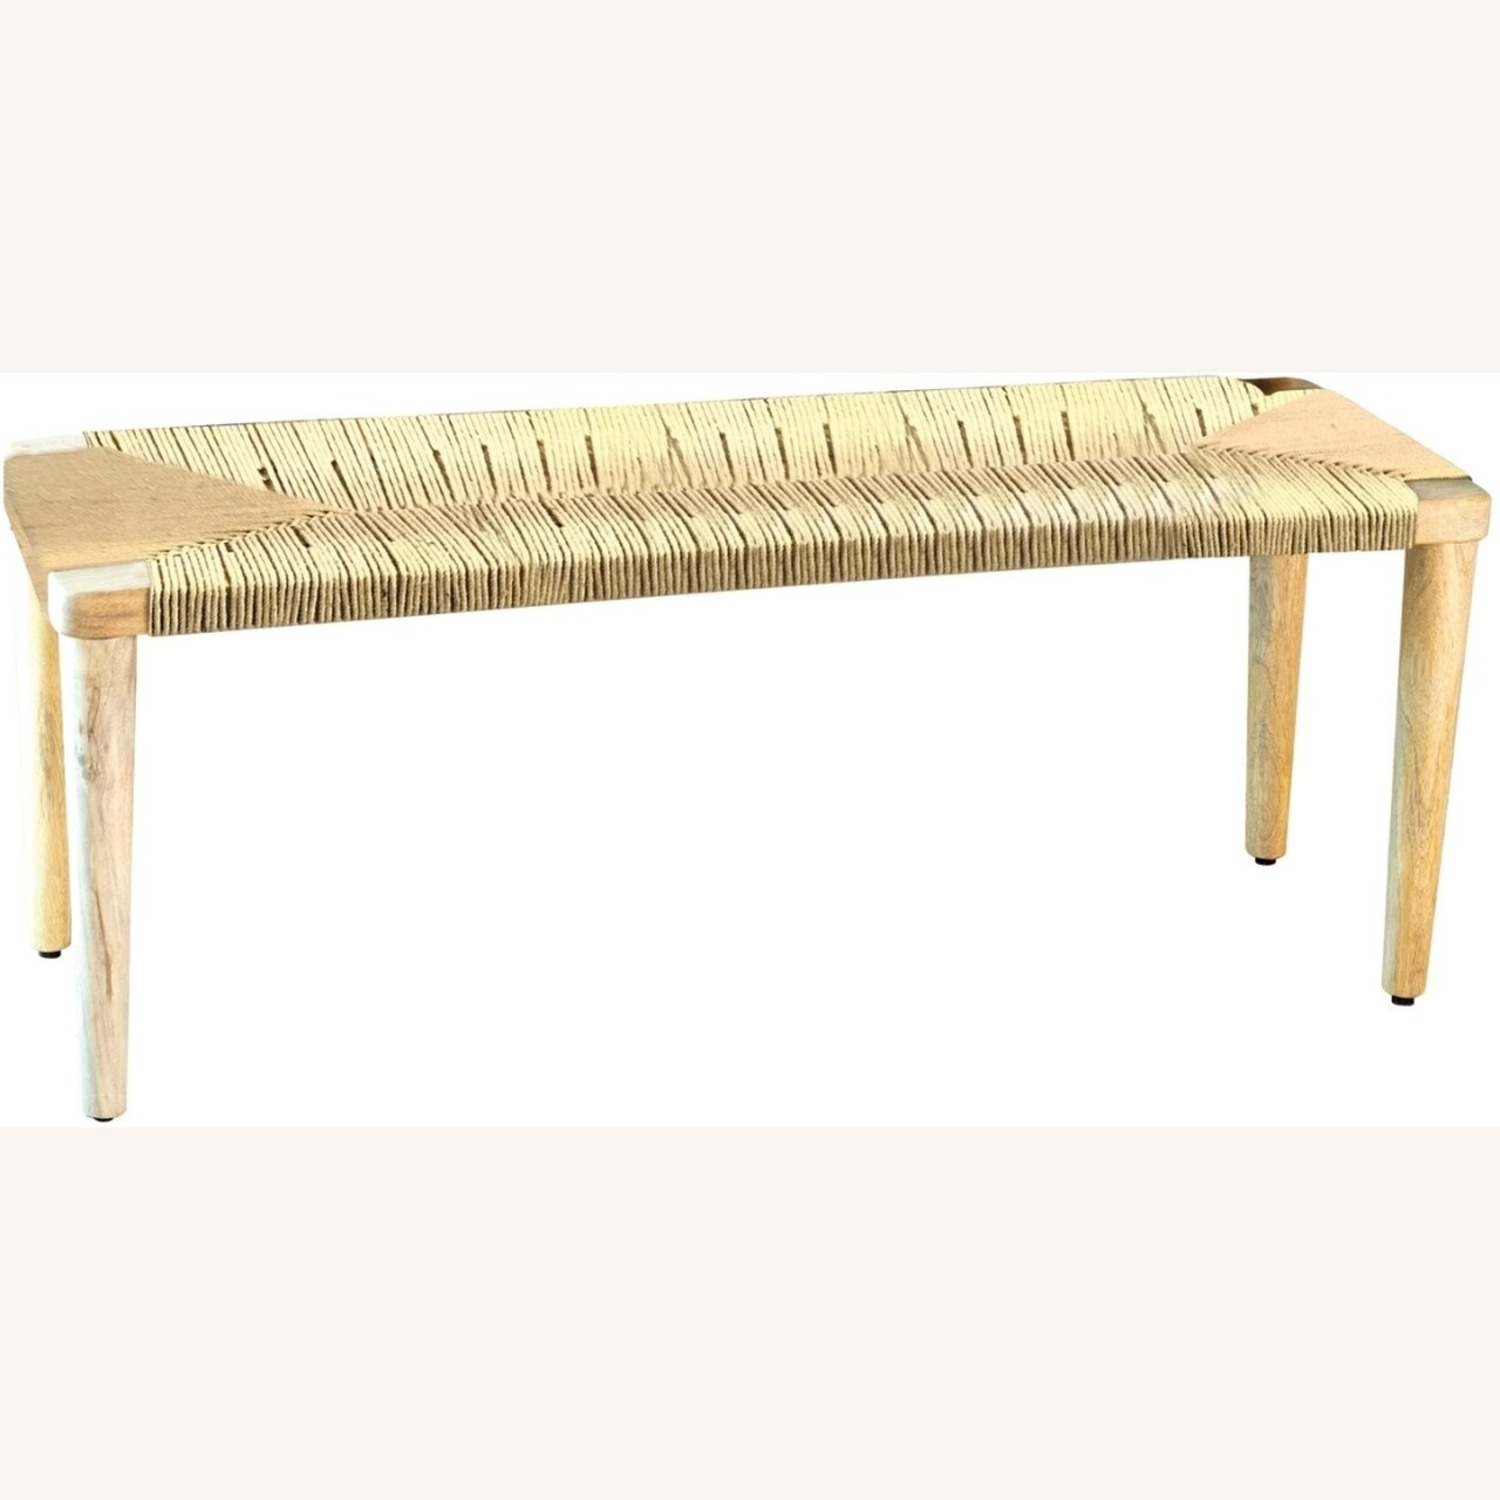 Classic Bench Made From Cotton Rope In Hazelnut - image-0